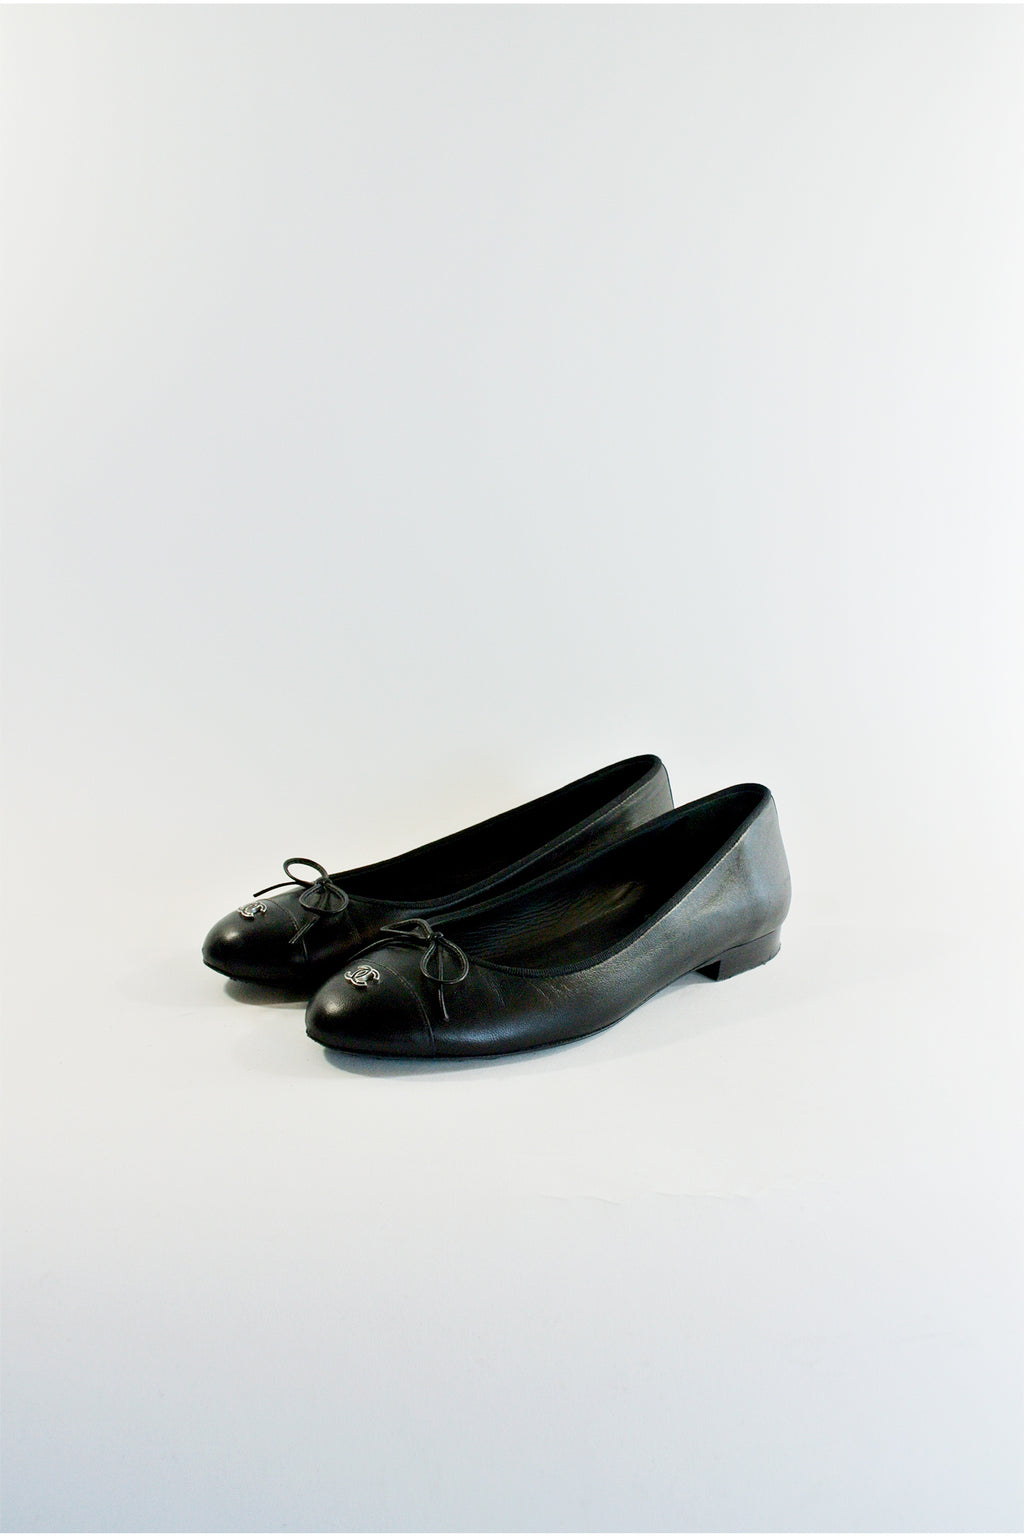 Chanel Leather Cap-Toe Flats Sz 37.5